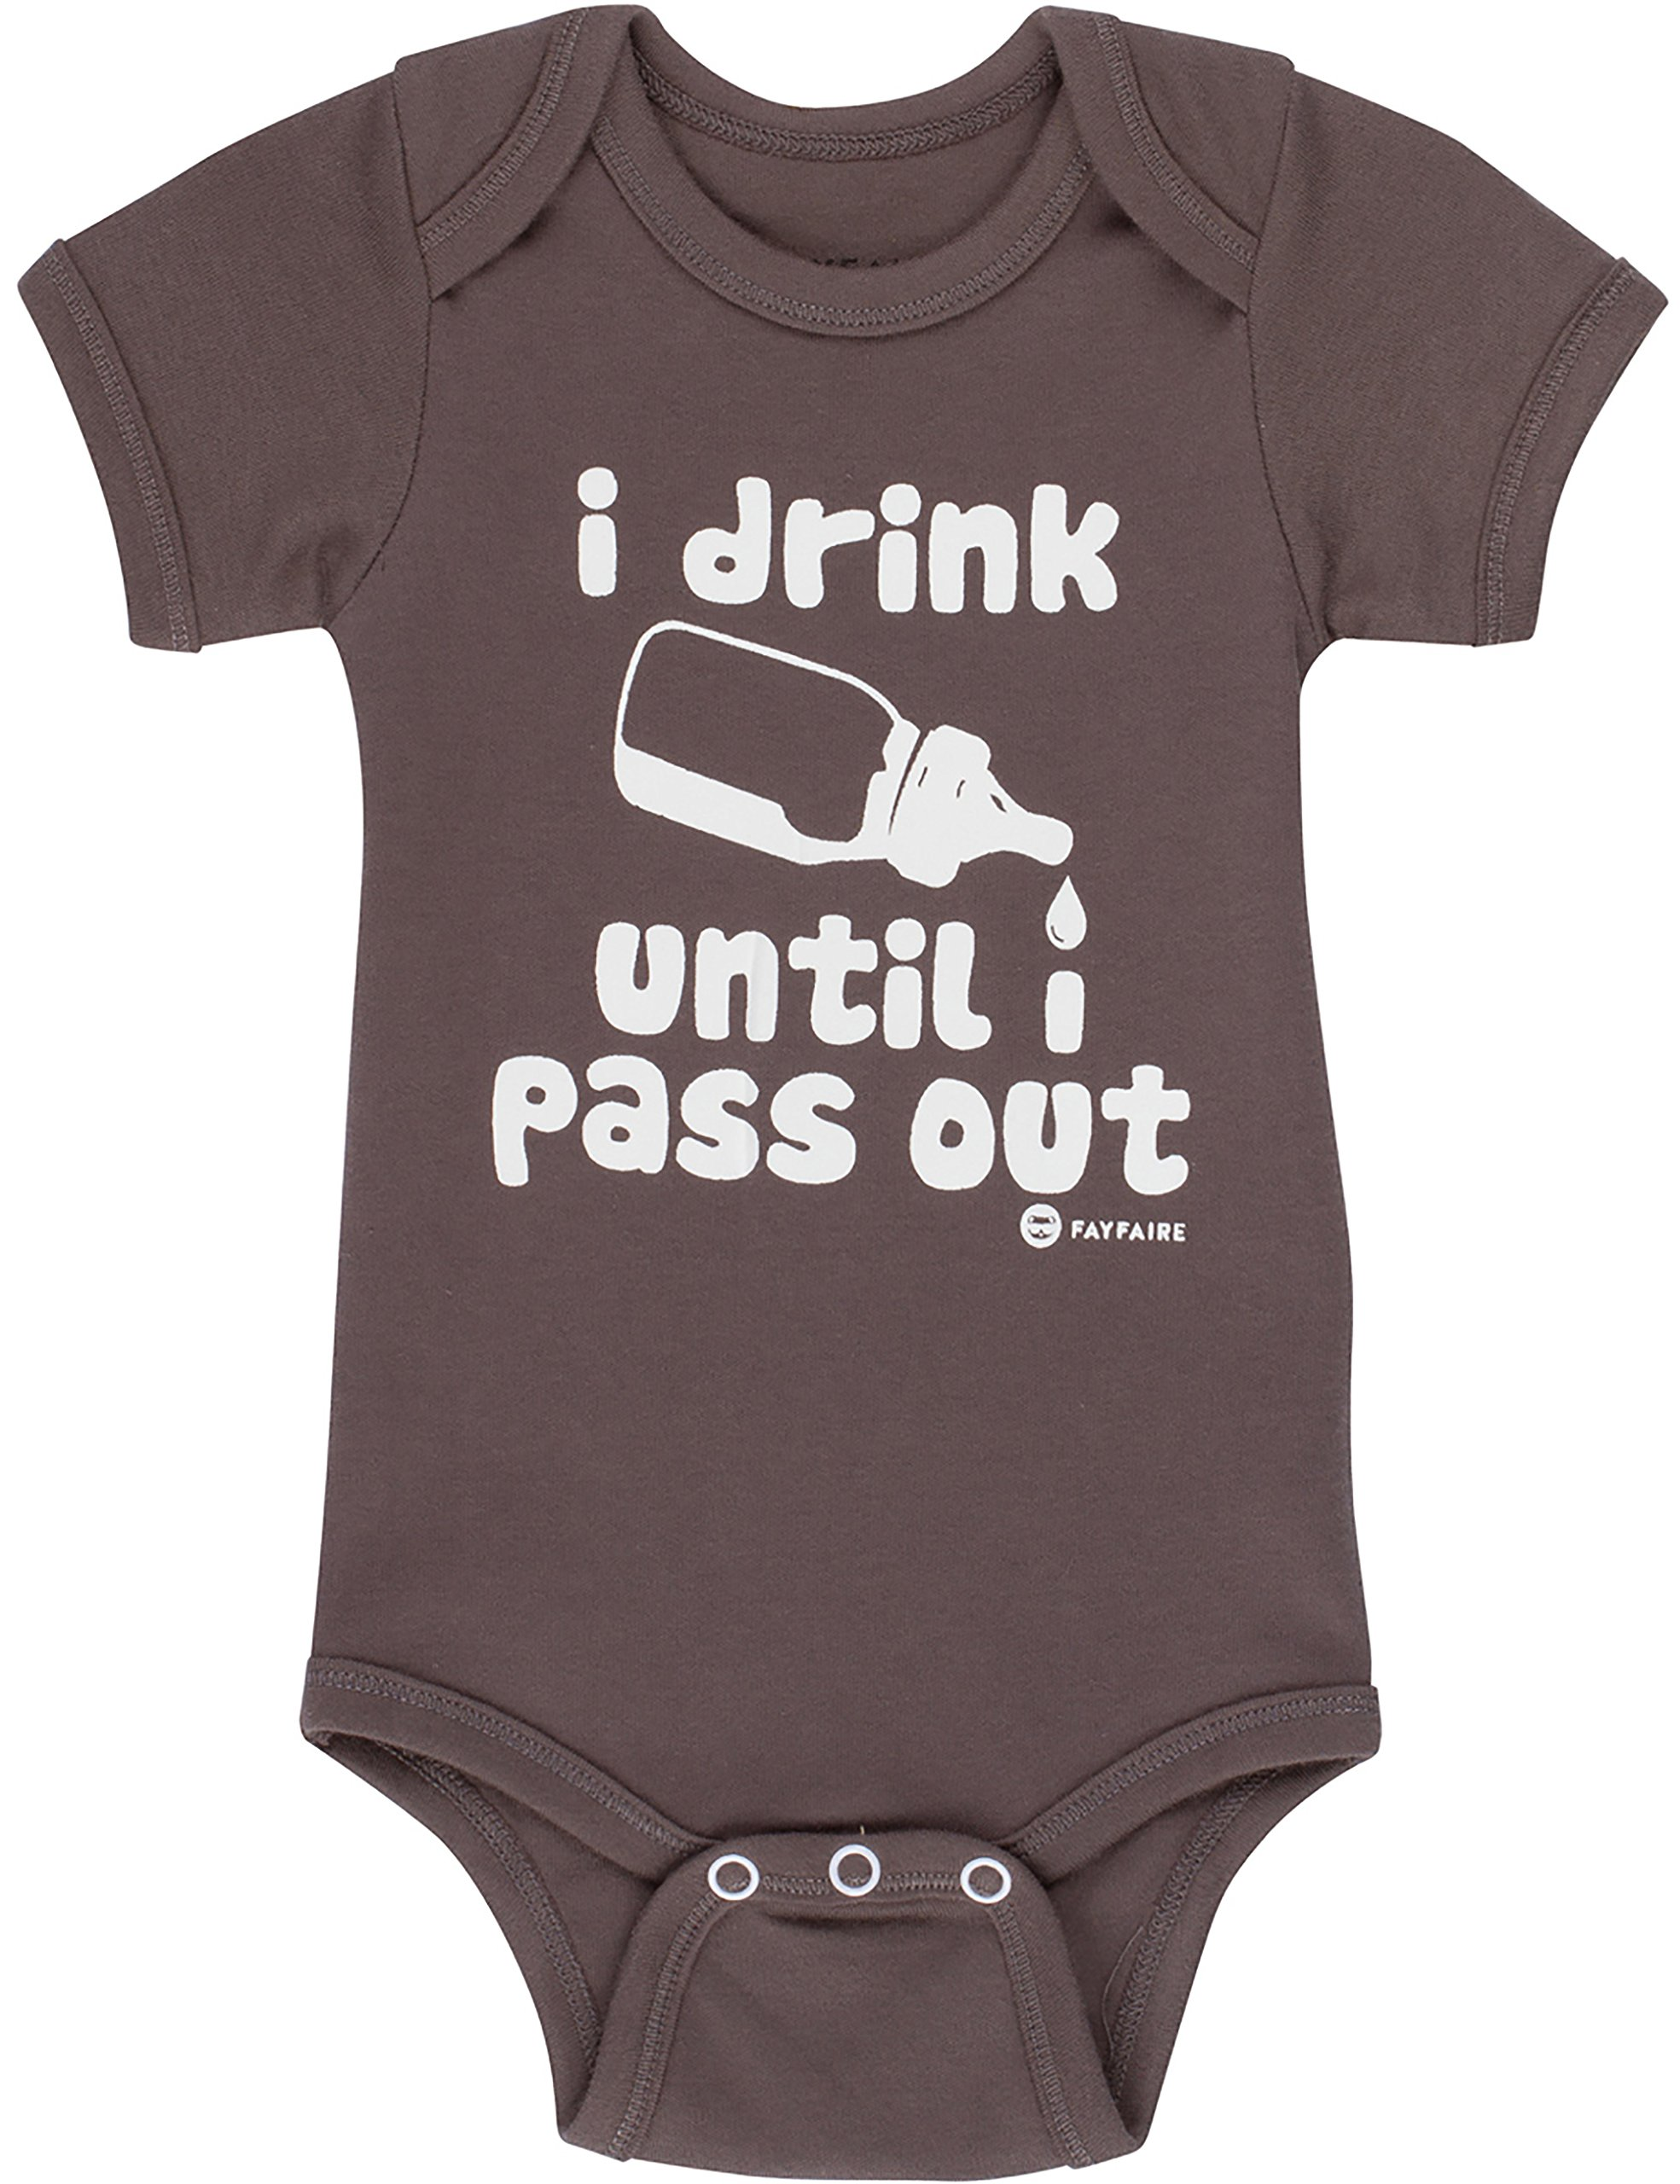 Fayfaire Outfit: Boutique Quality Funny I Drink Until I Pass Out NB-6M by Fayfaire